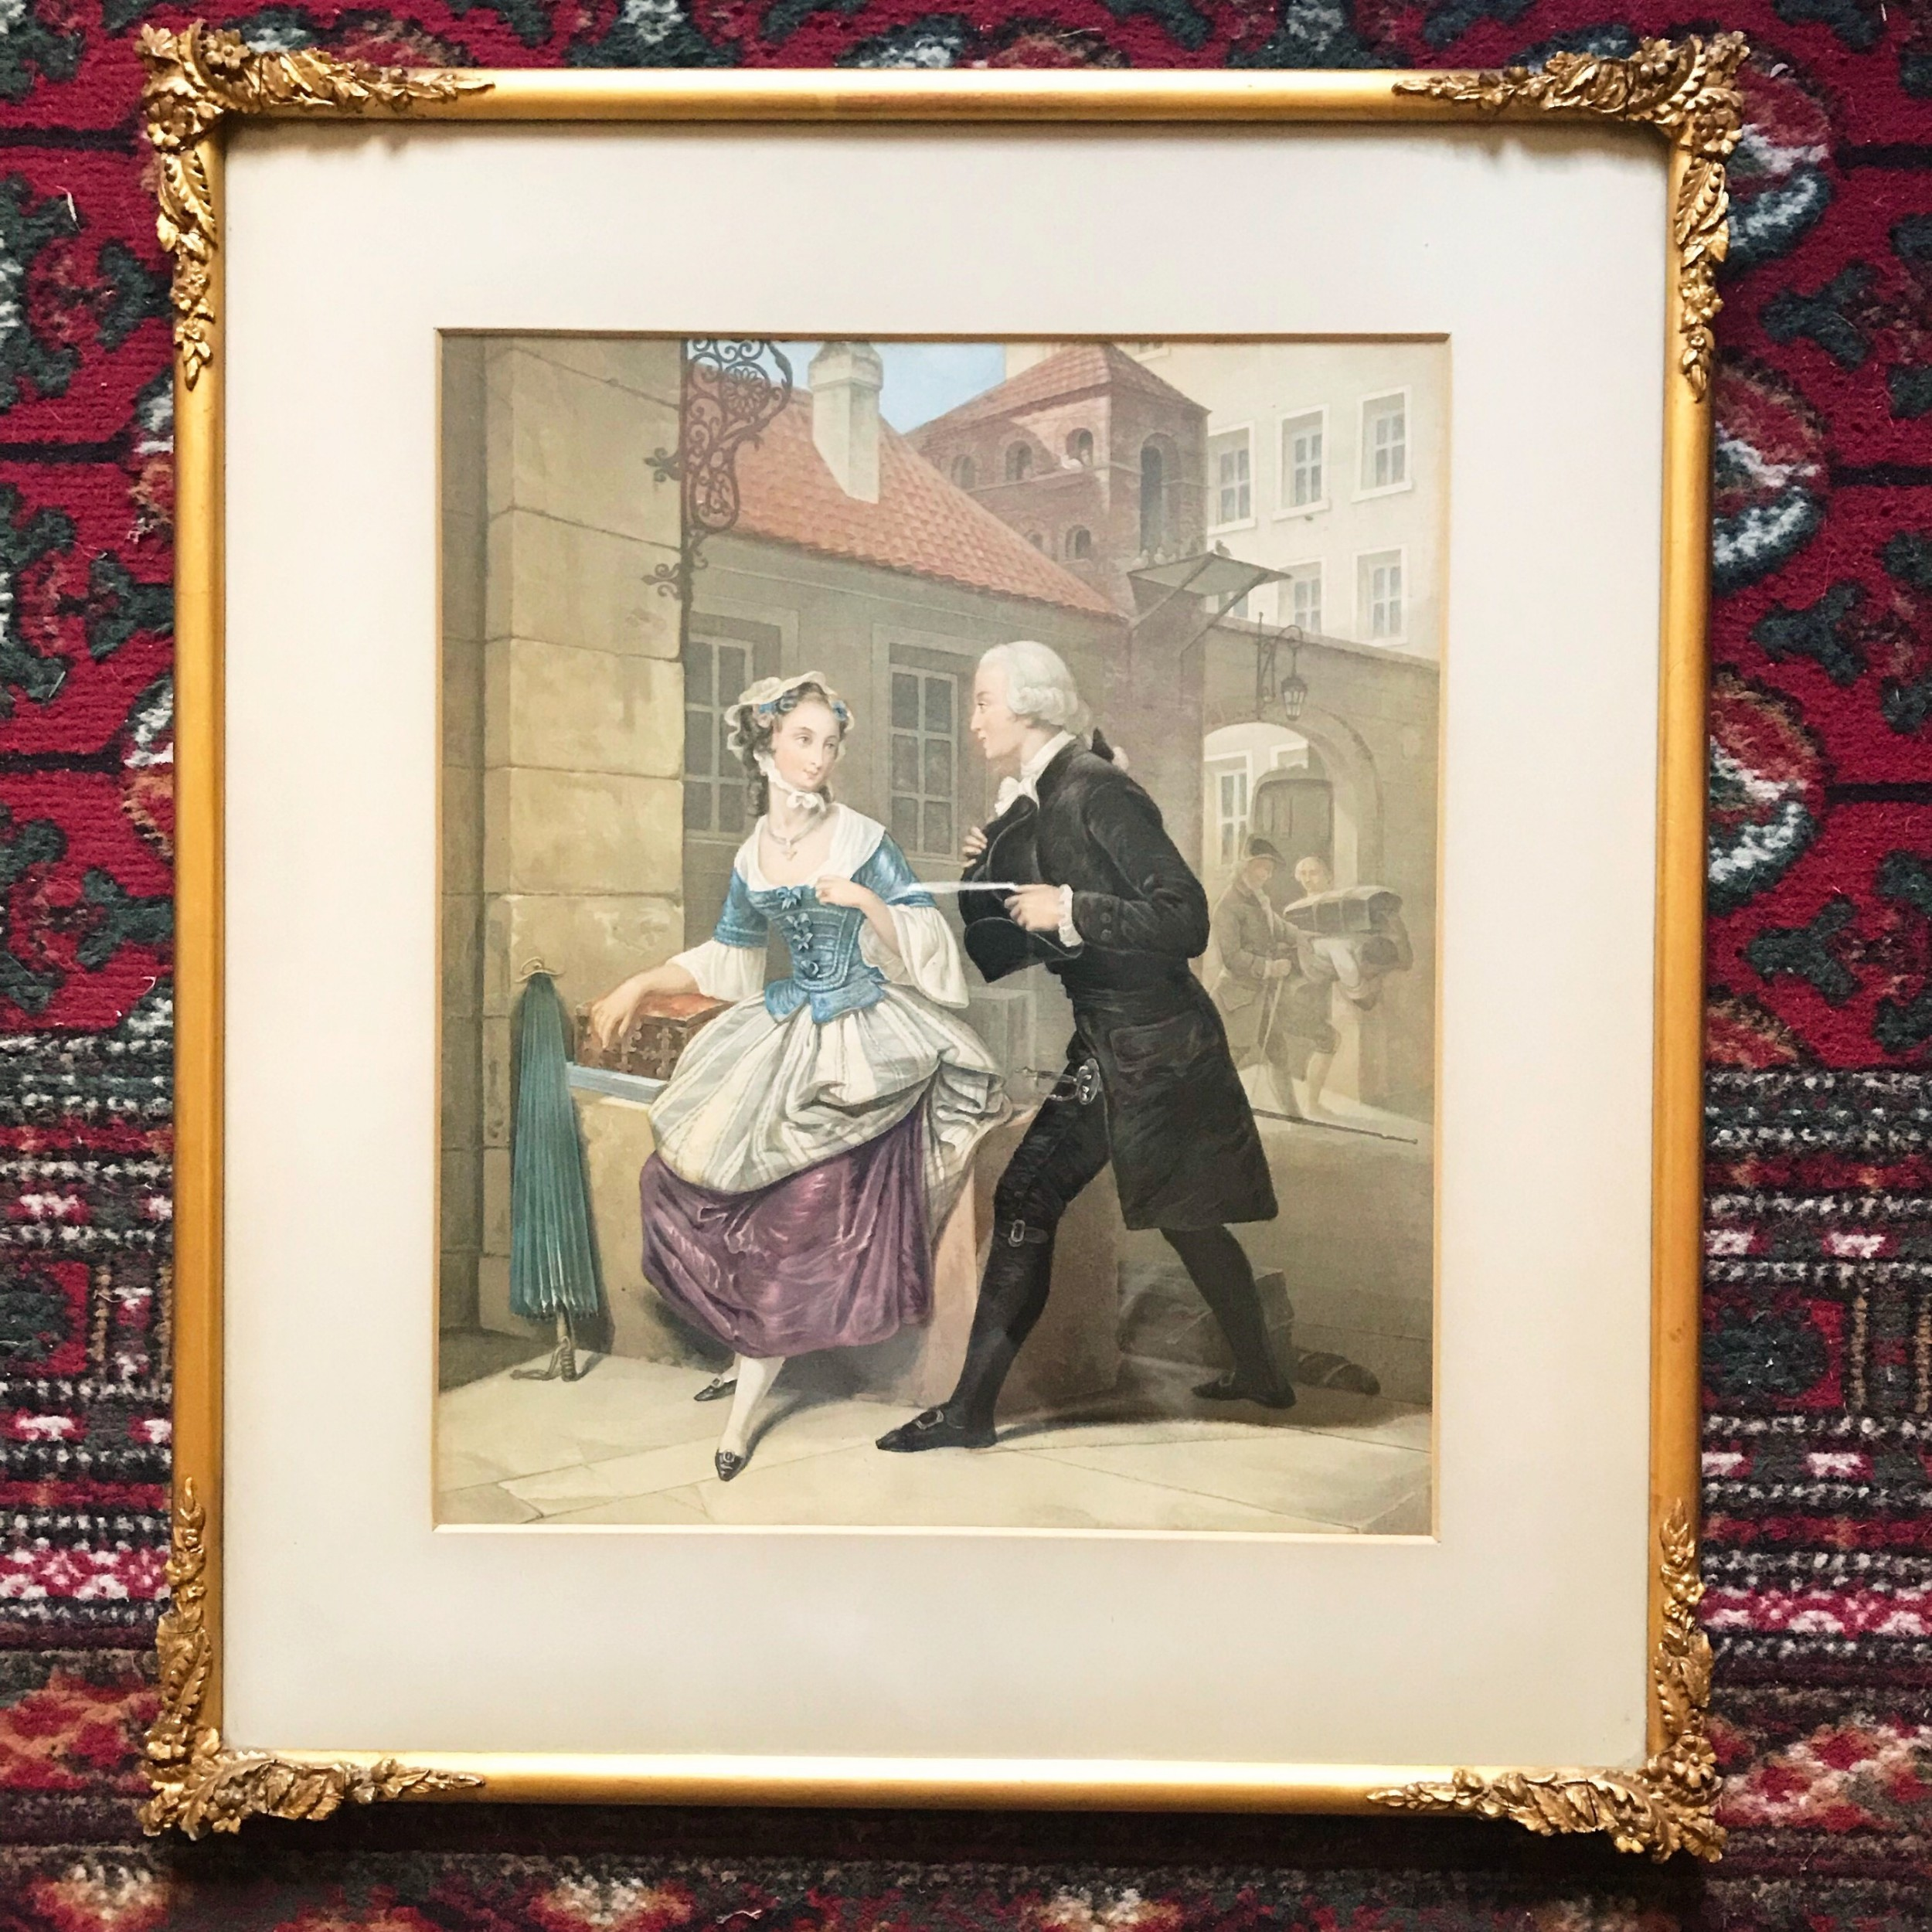 19thc lithograph portrait of gentleman lady after original watercolour painting